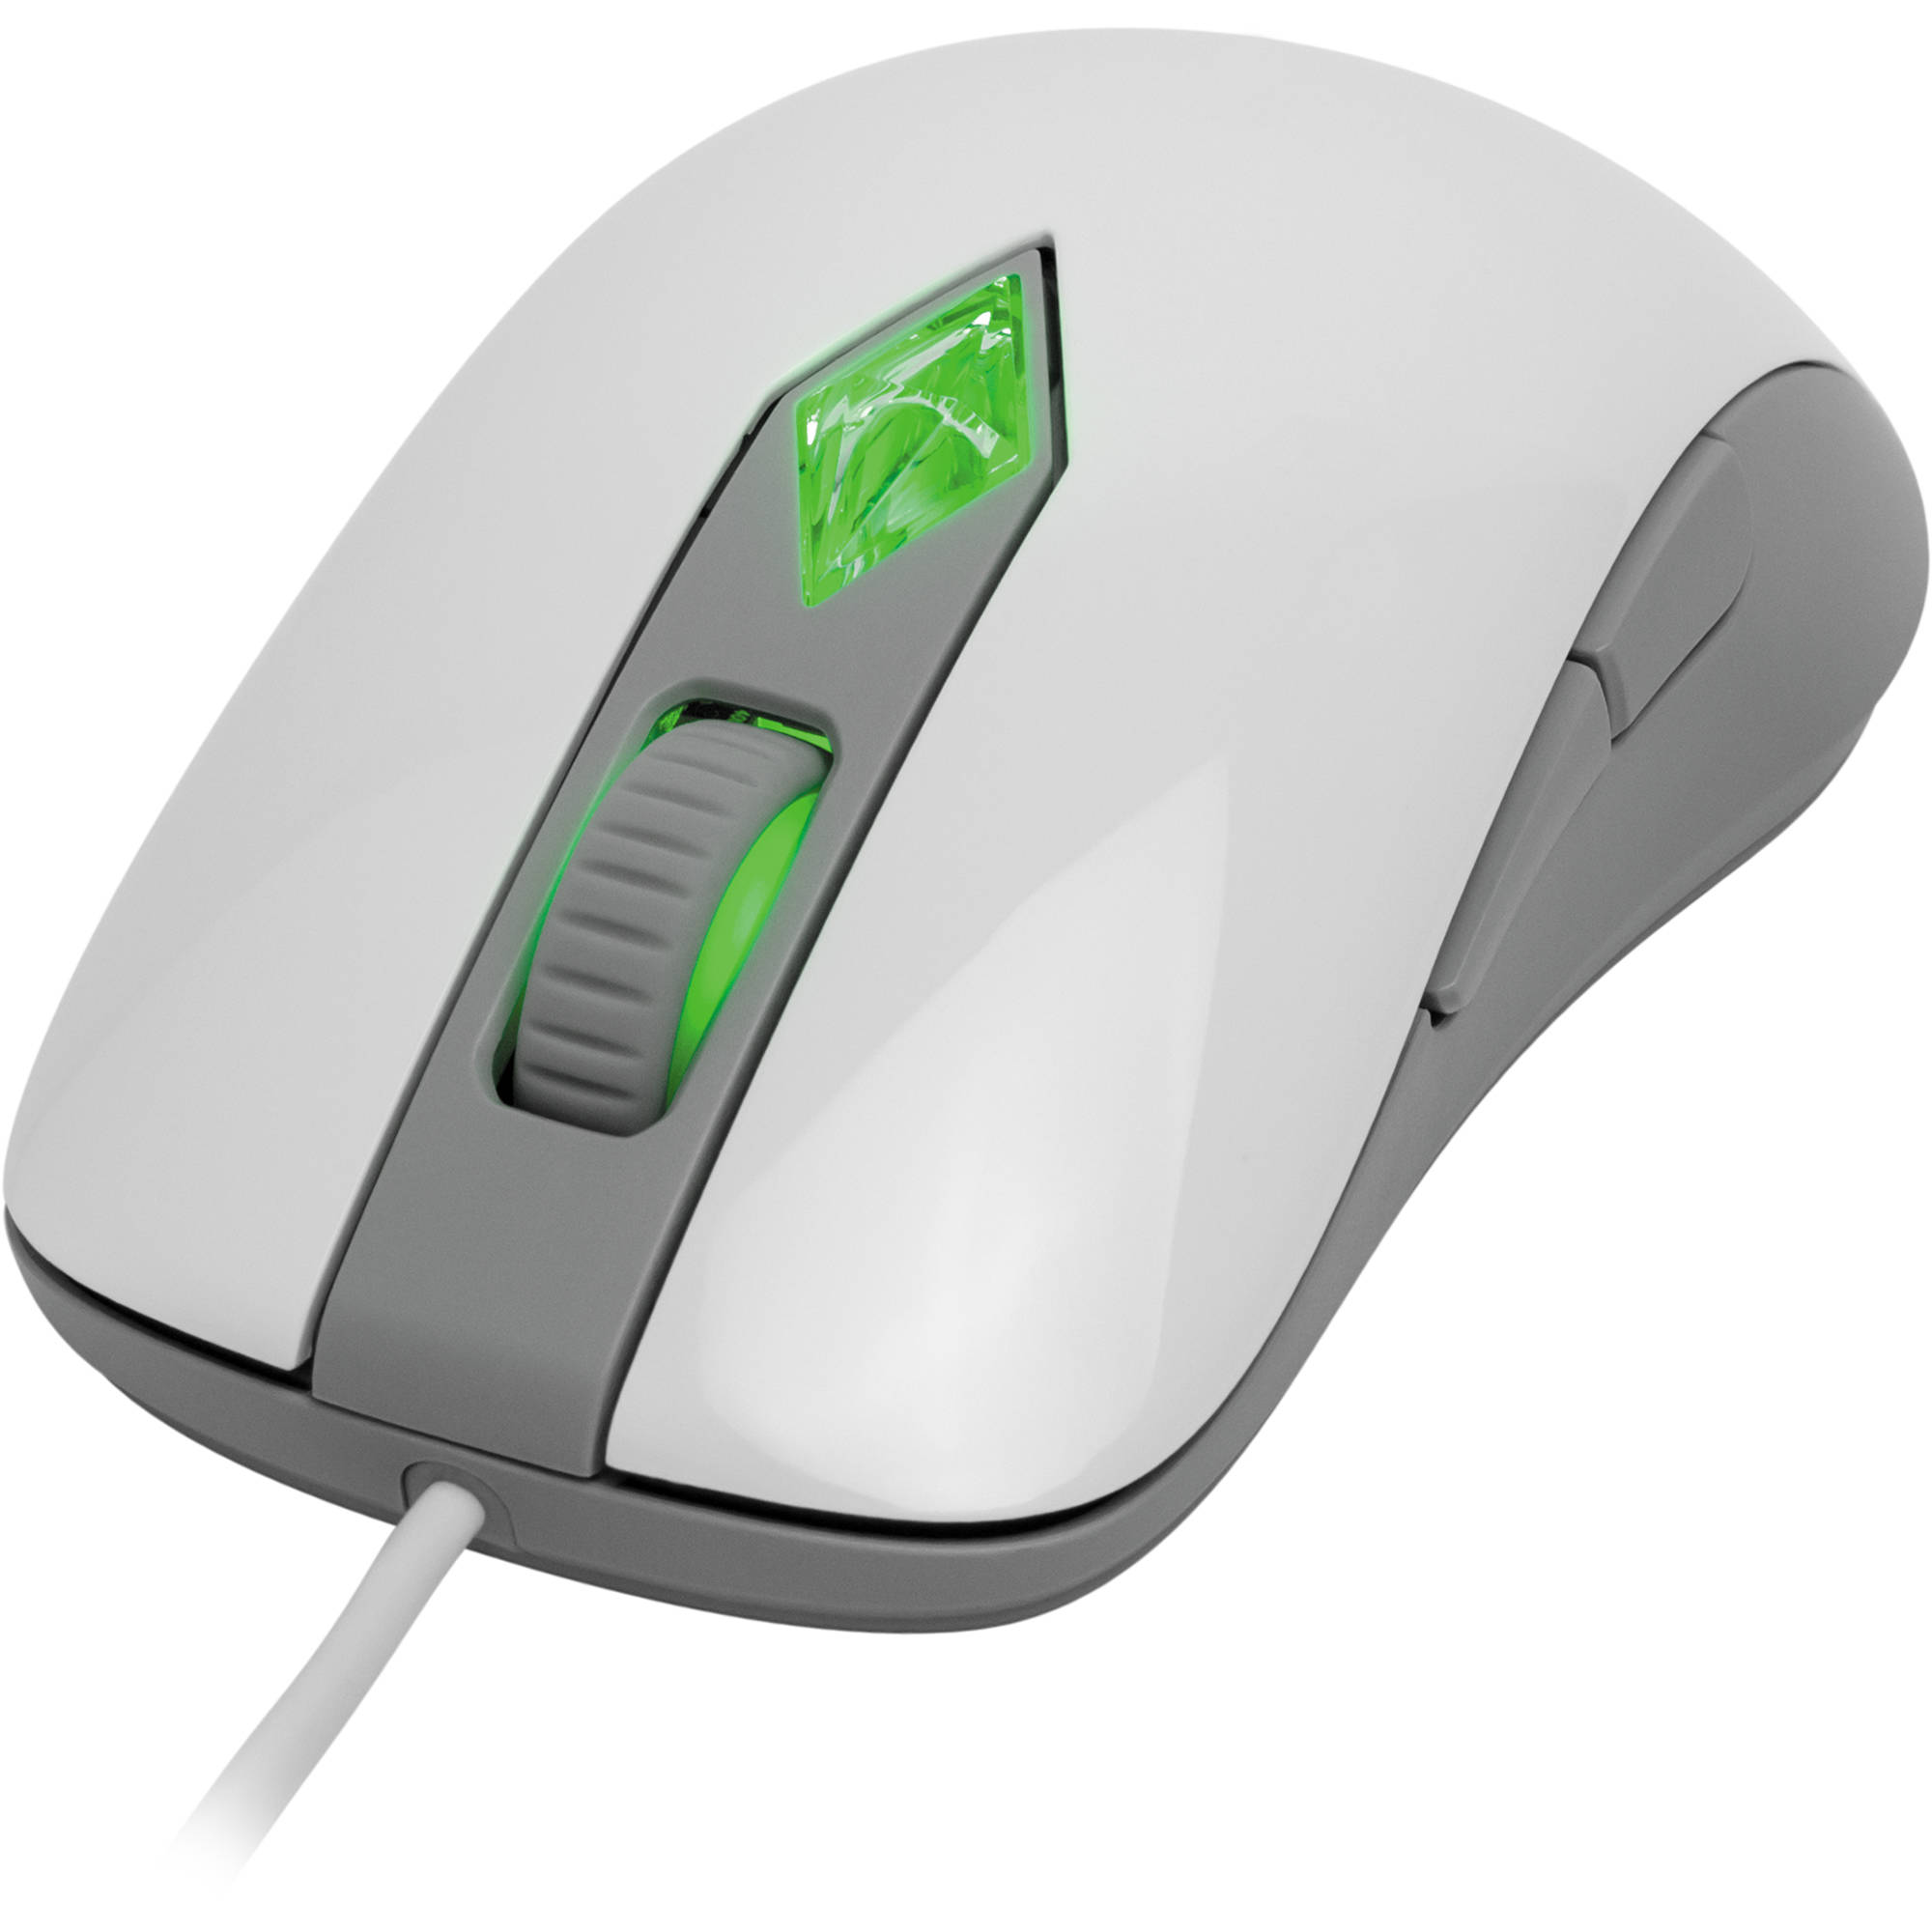 STEELSERIES THE SIMS 4 GAMING MOUSE DRIVERS FOR WINDOWS DOWNLOAD